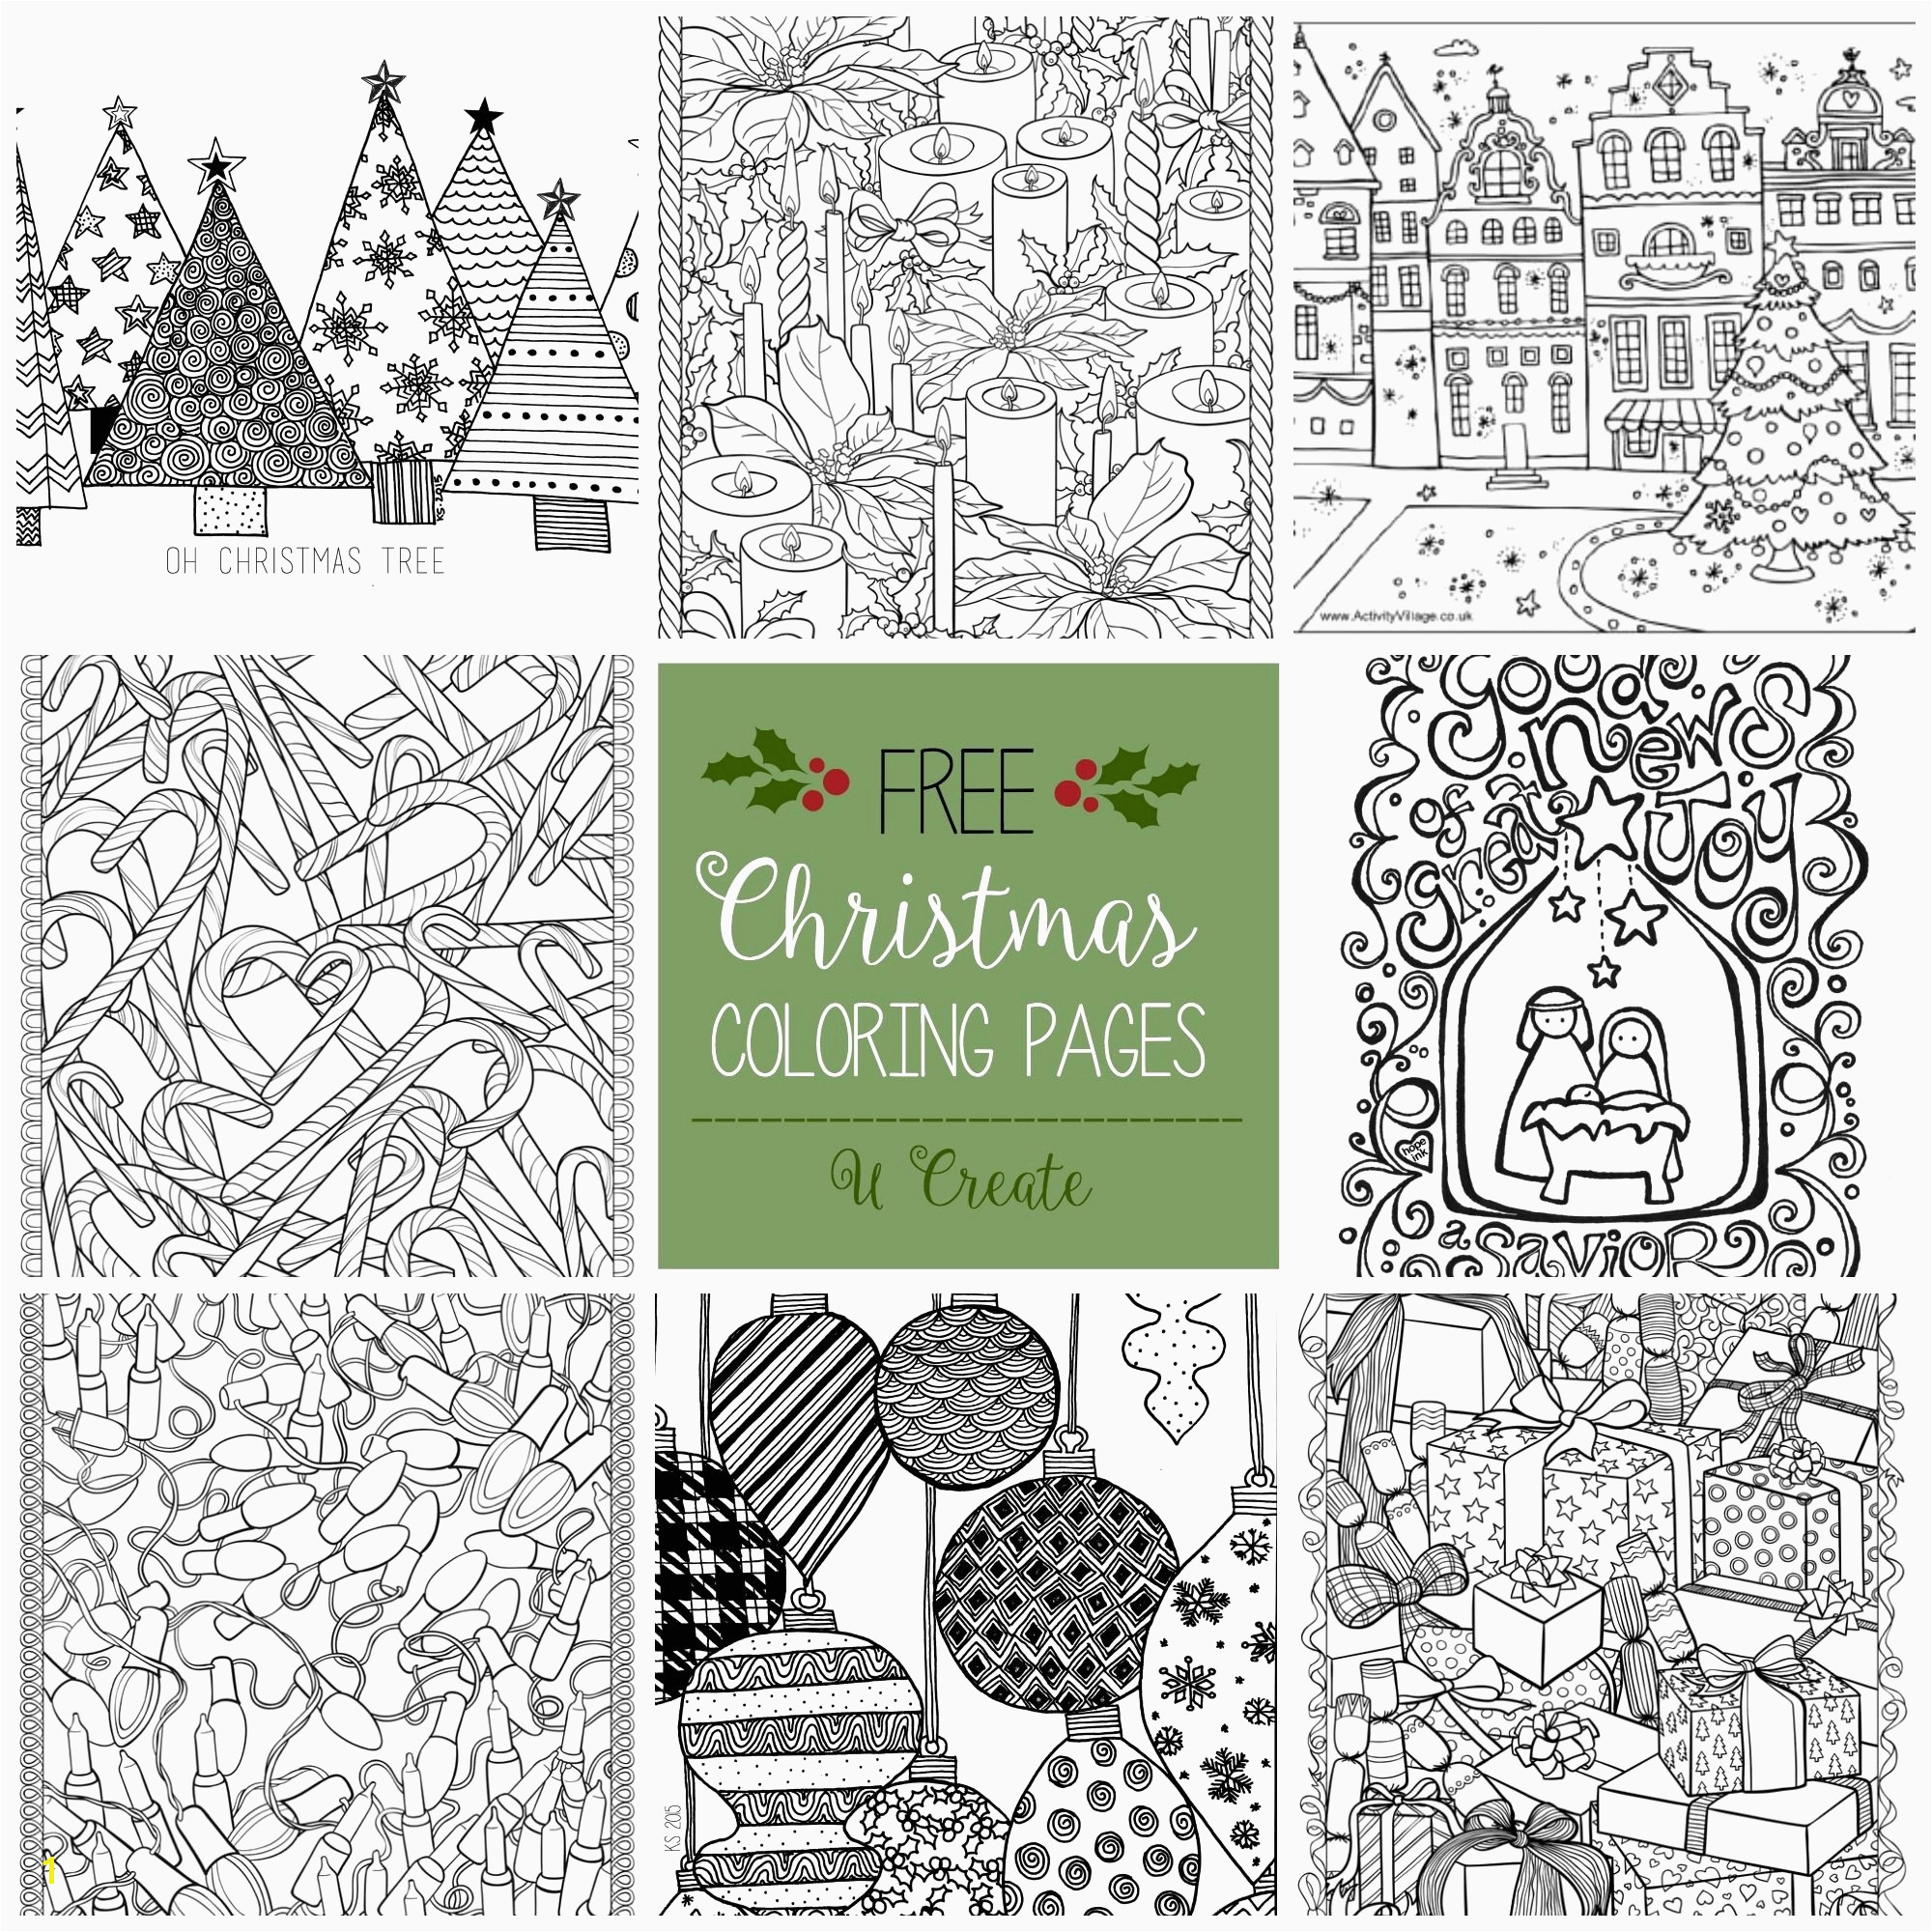 christmas coloring pages printable 13g od dog coloring pages printable holiday coloring pages beautiful christmas coloring pages free and printable new best vases flower